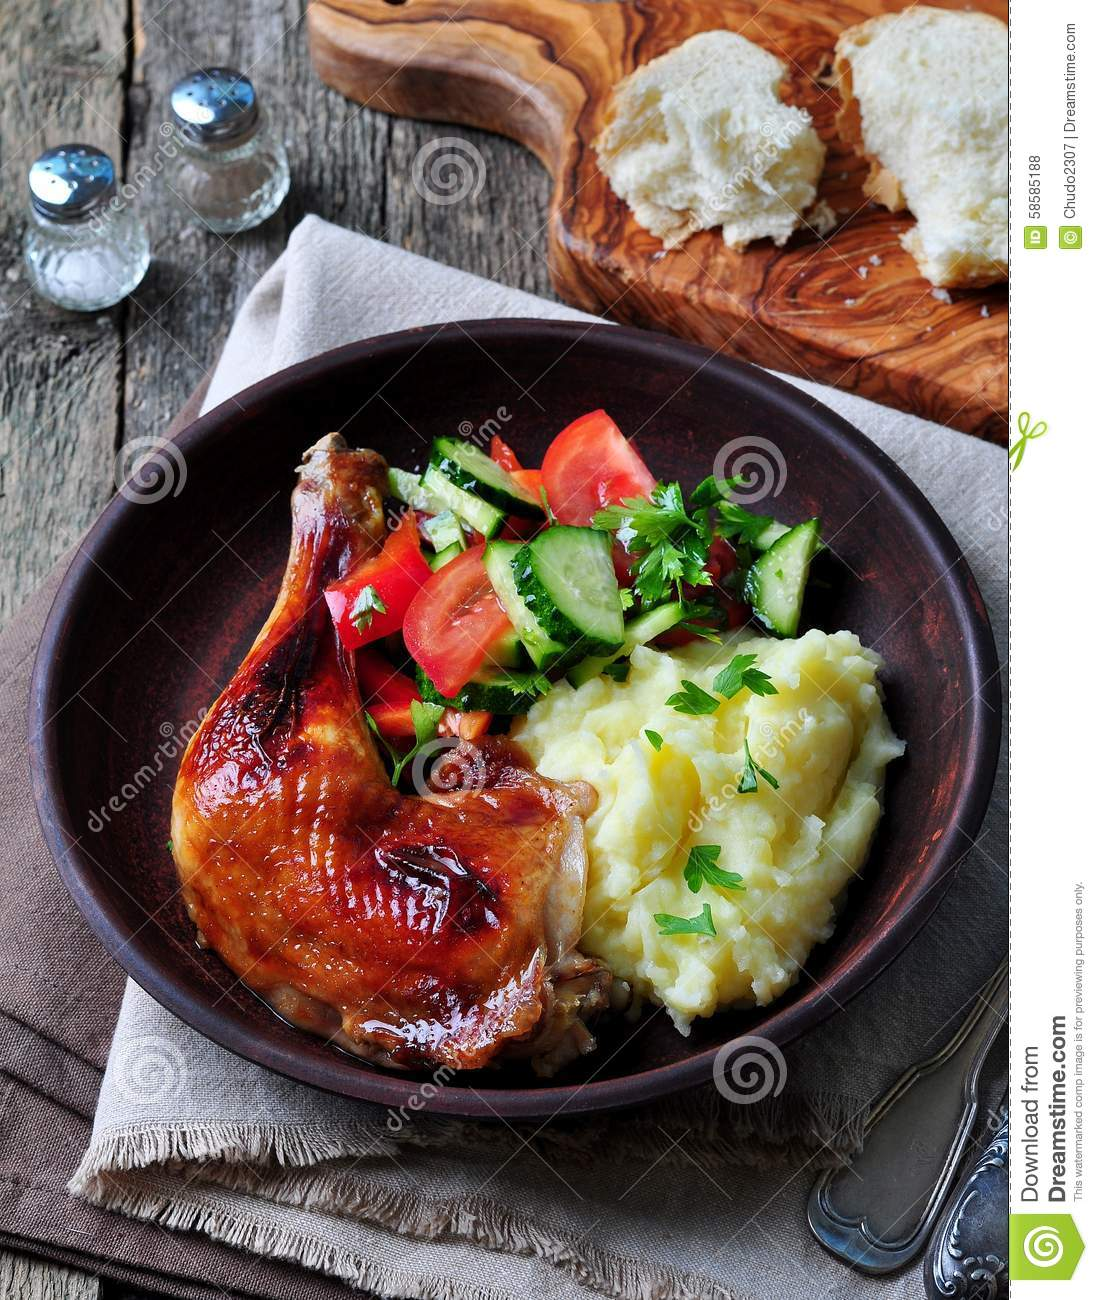 Glazed Roasted Chicken Leg With Mashed Potatoes And Vegetable Salad